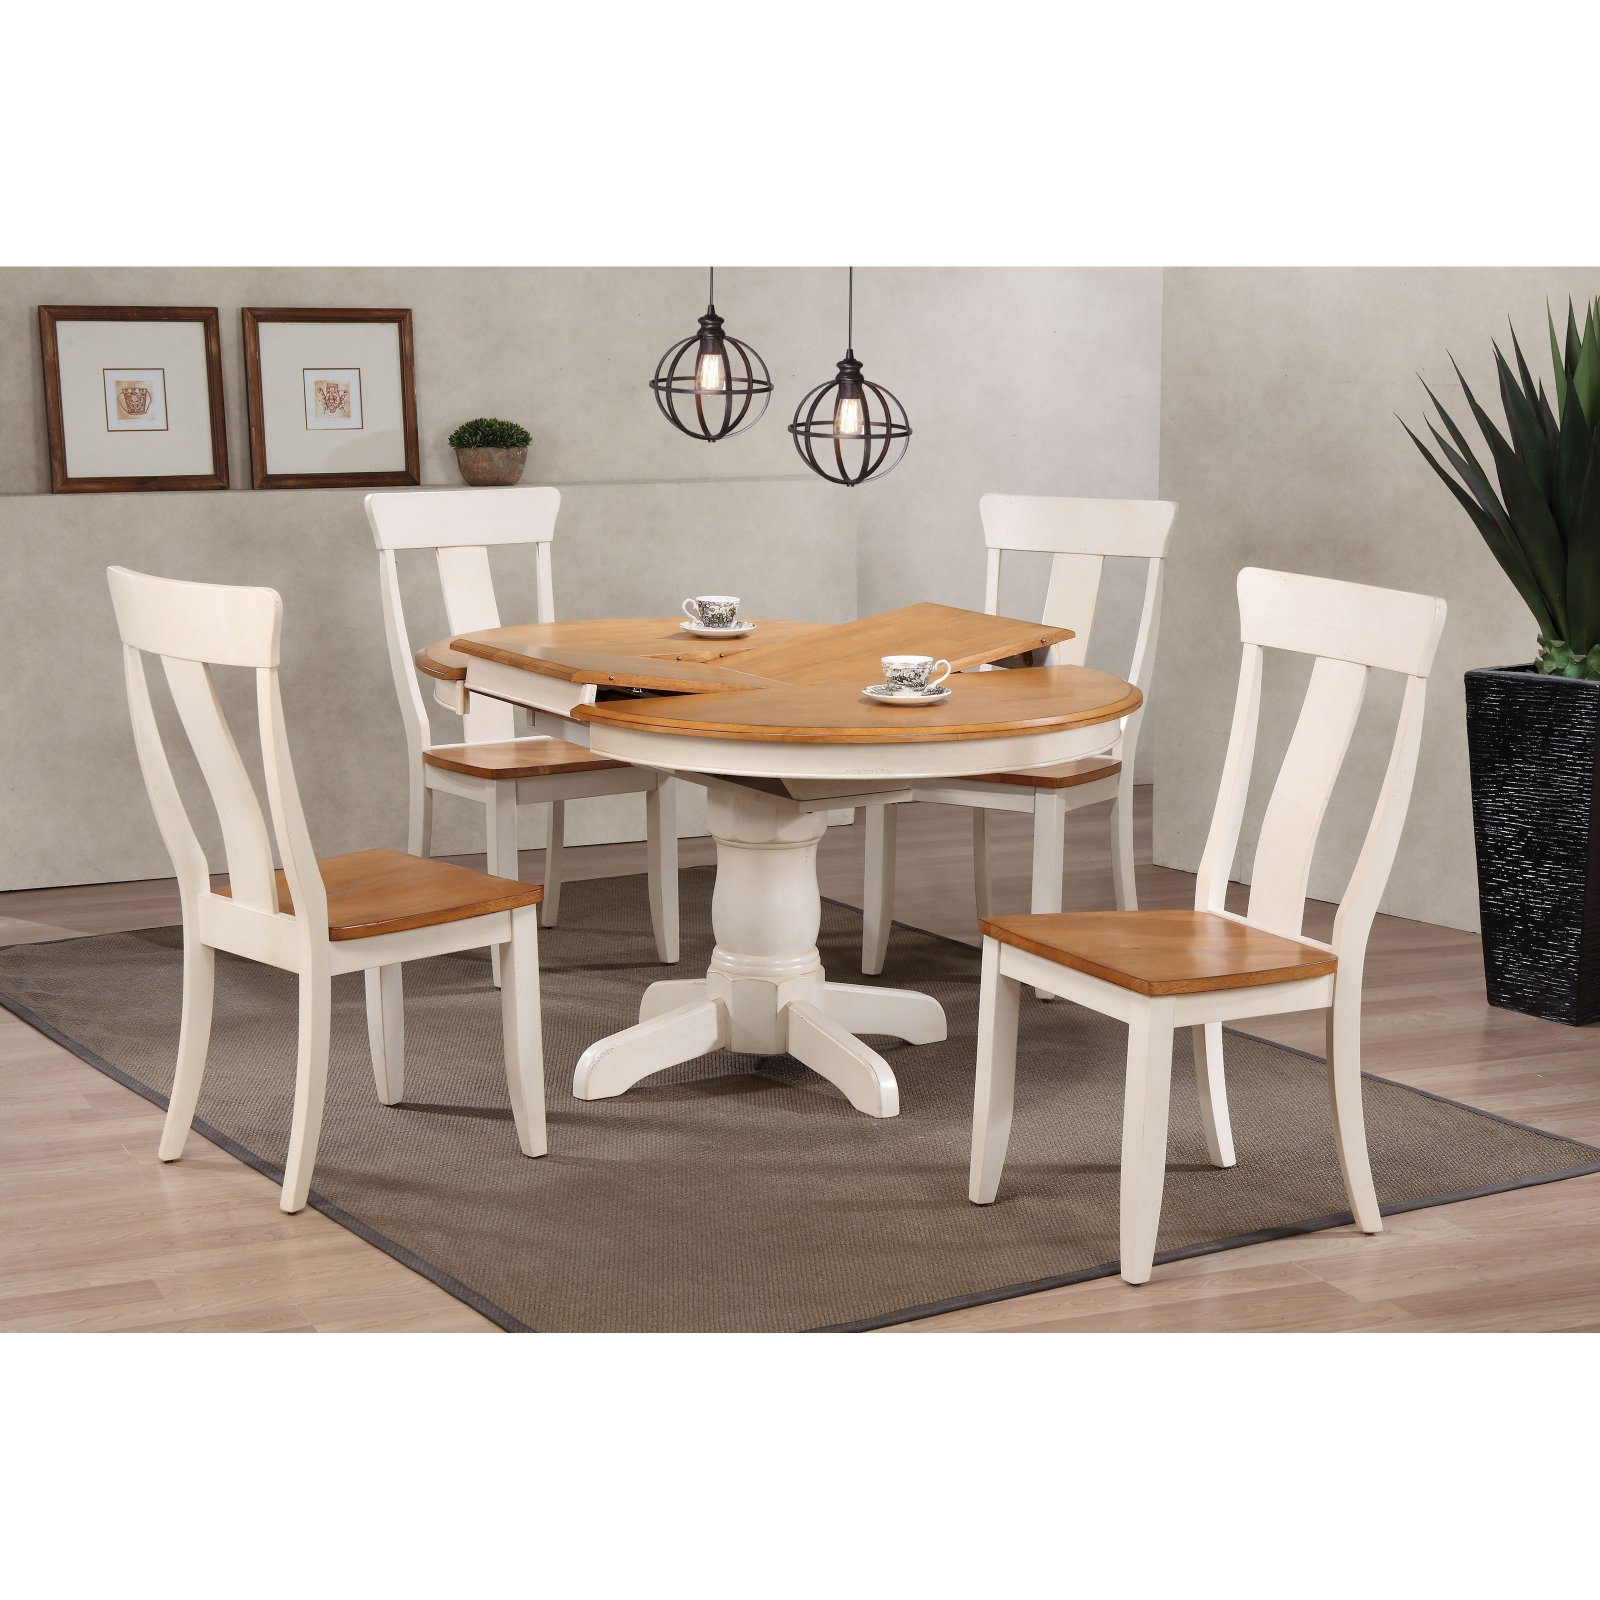 Iconic Furniture Round Antiqued Panel Back 5 Piece Dining Table Set